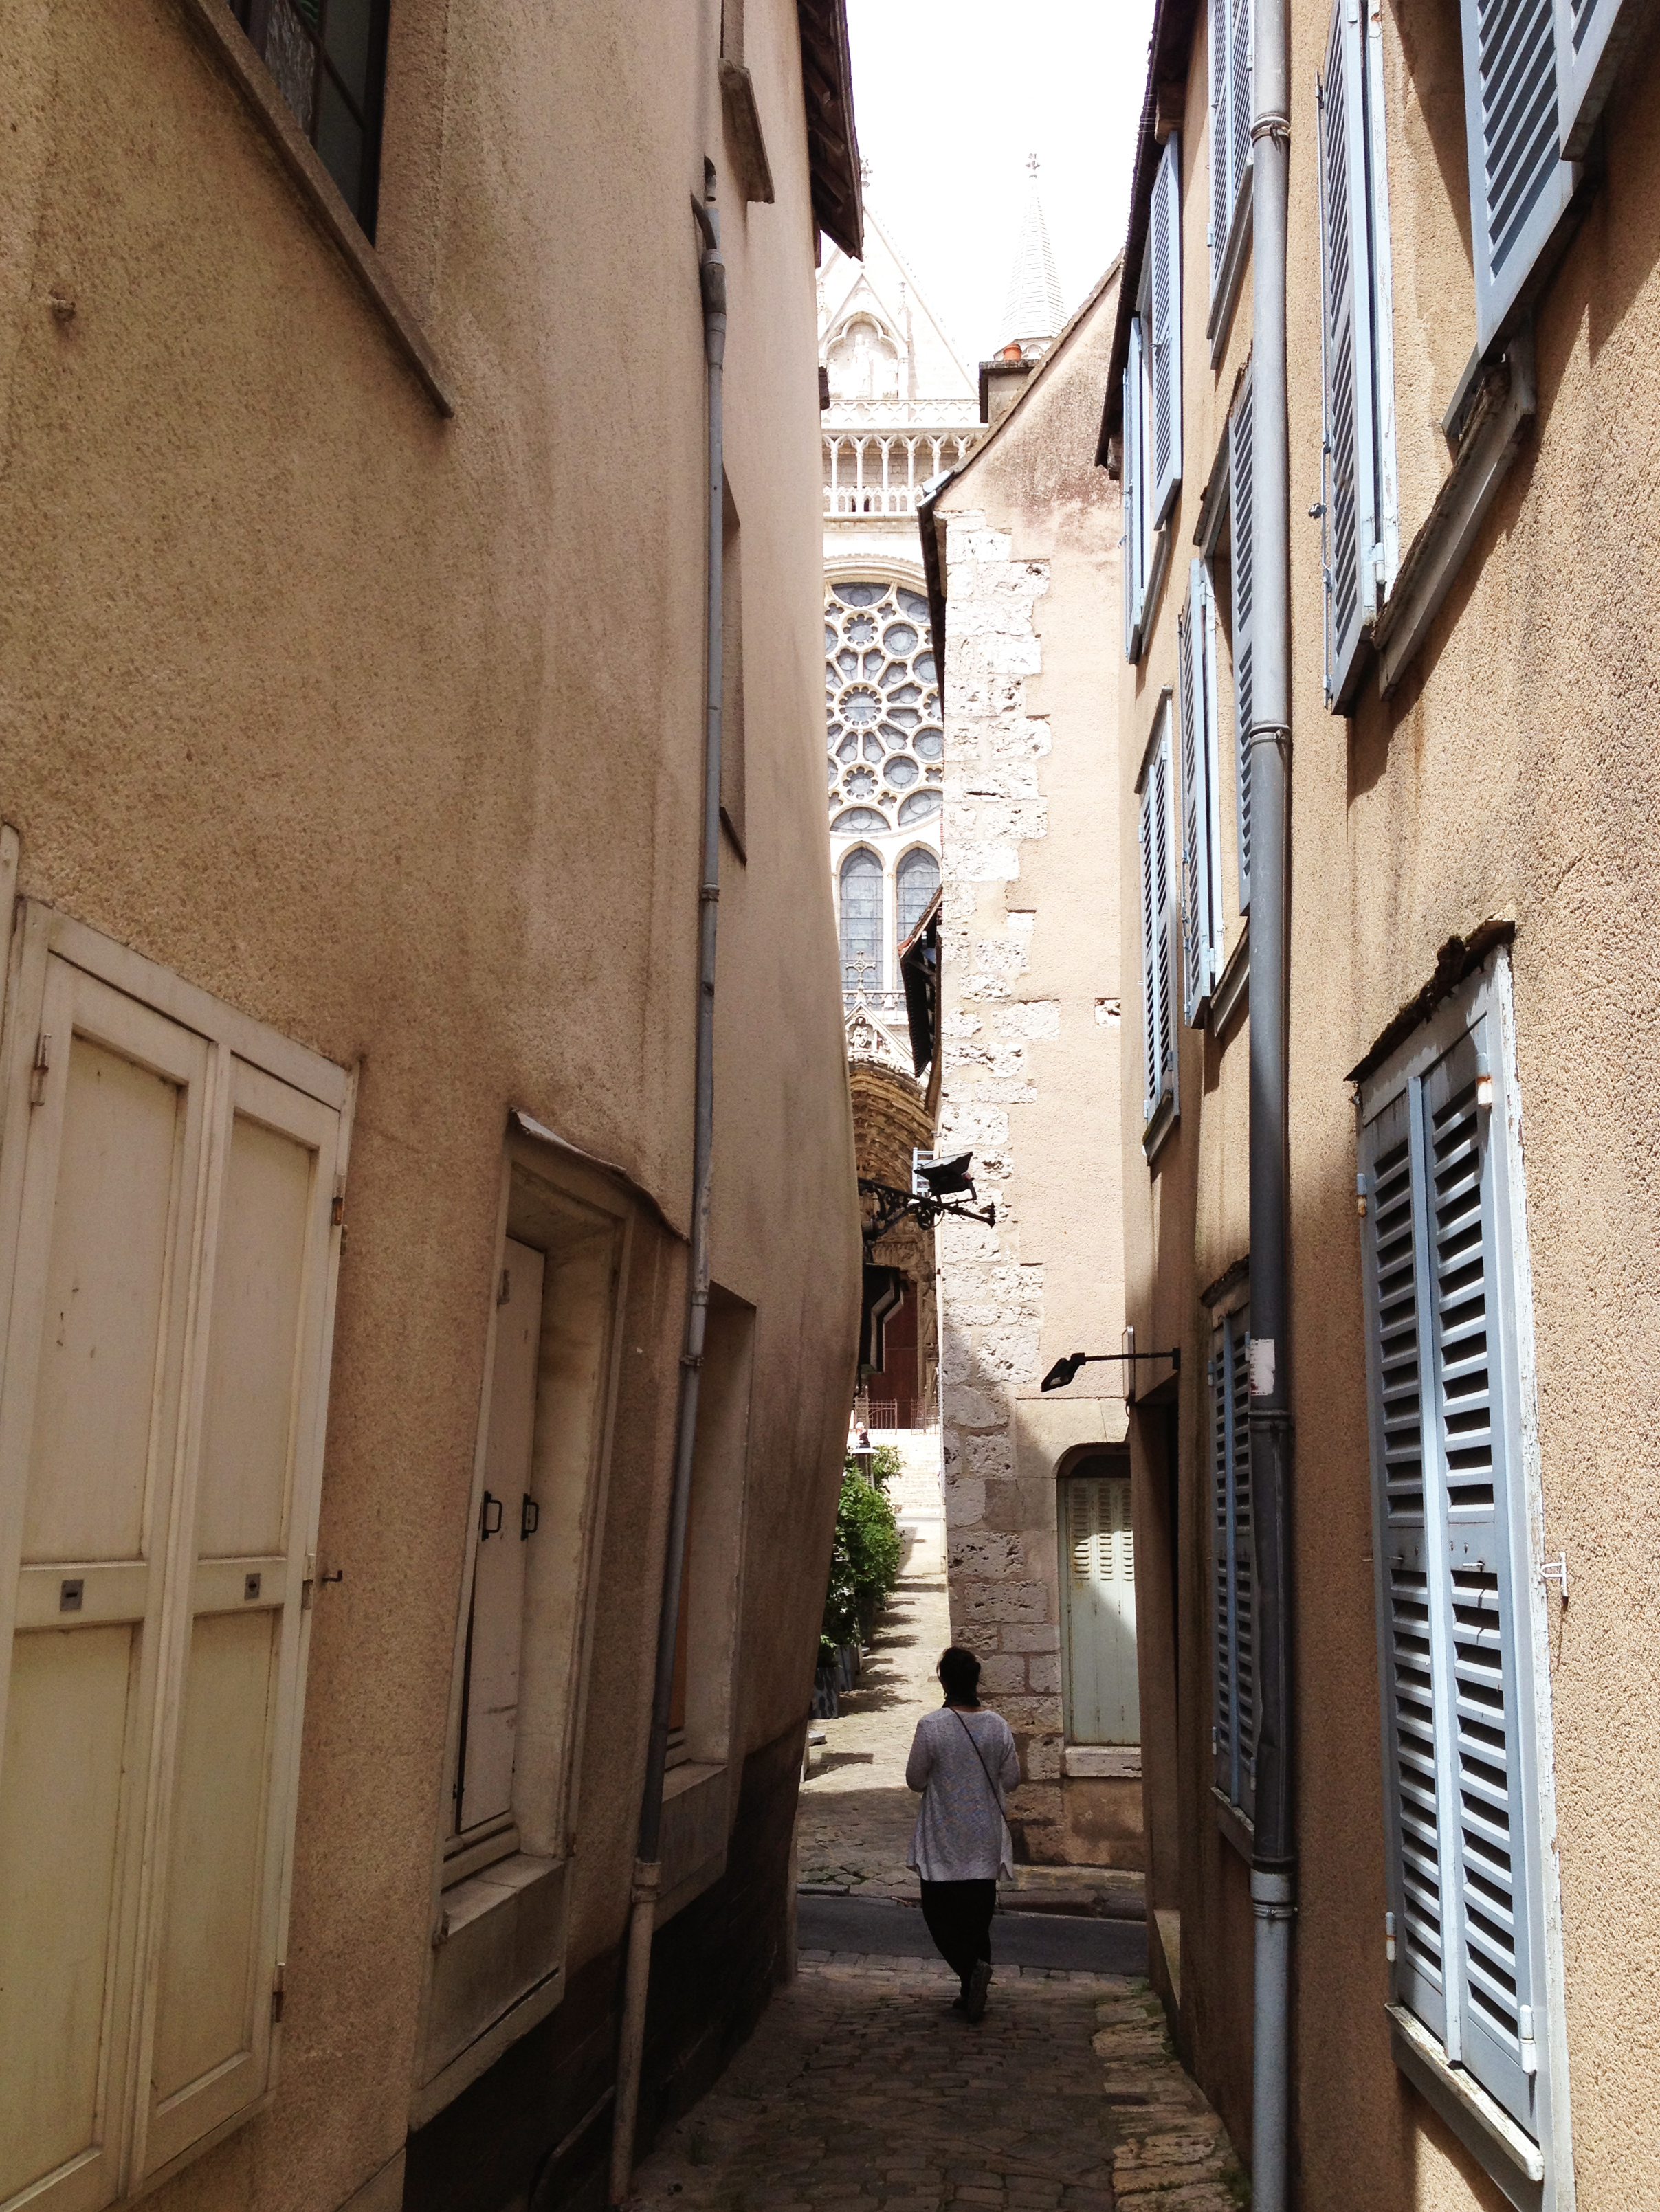 One of the little alleys of Chartres with a peek of the cathedral.